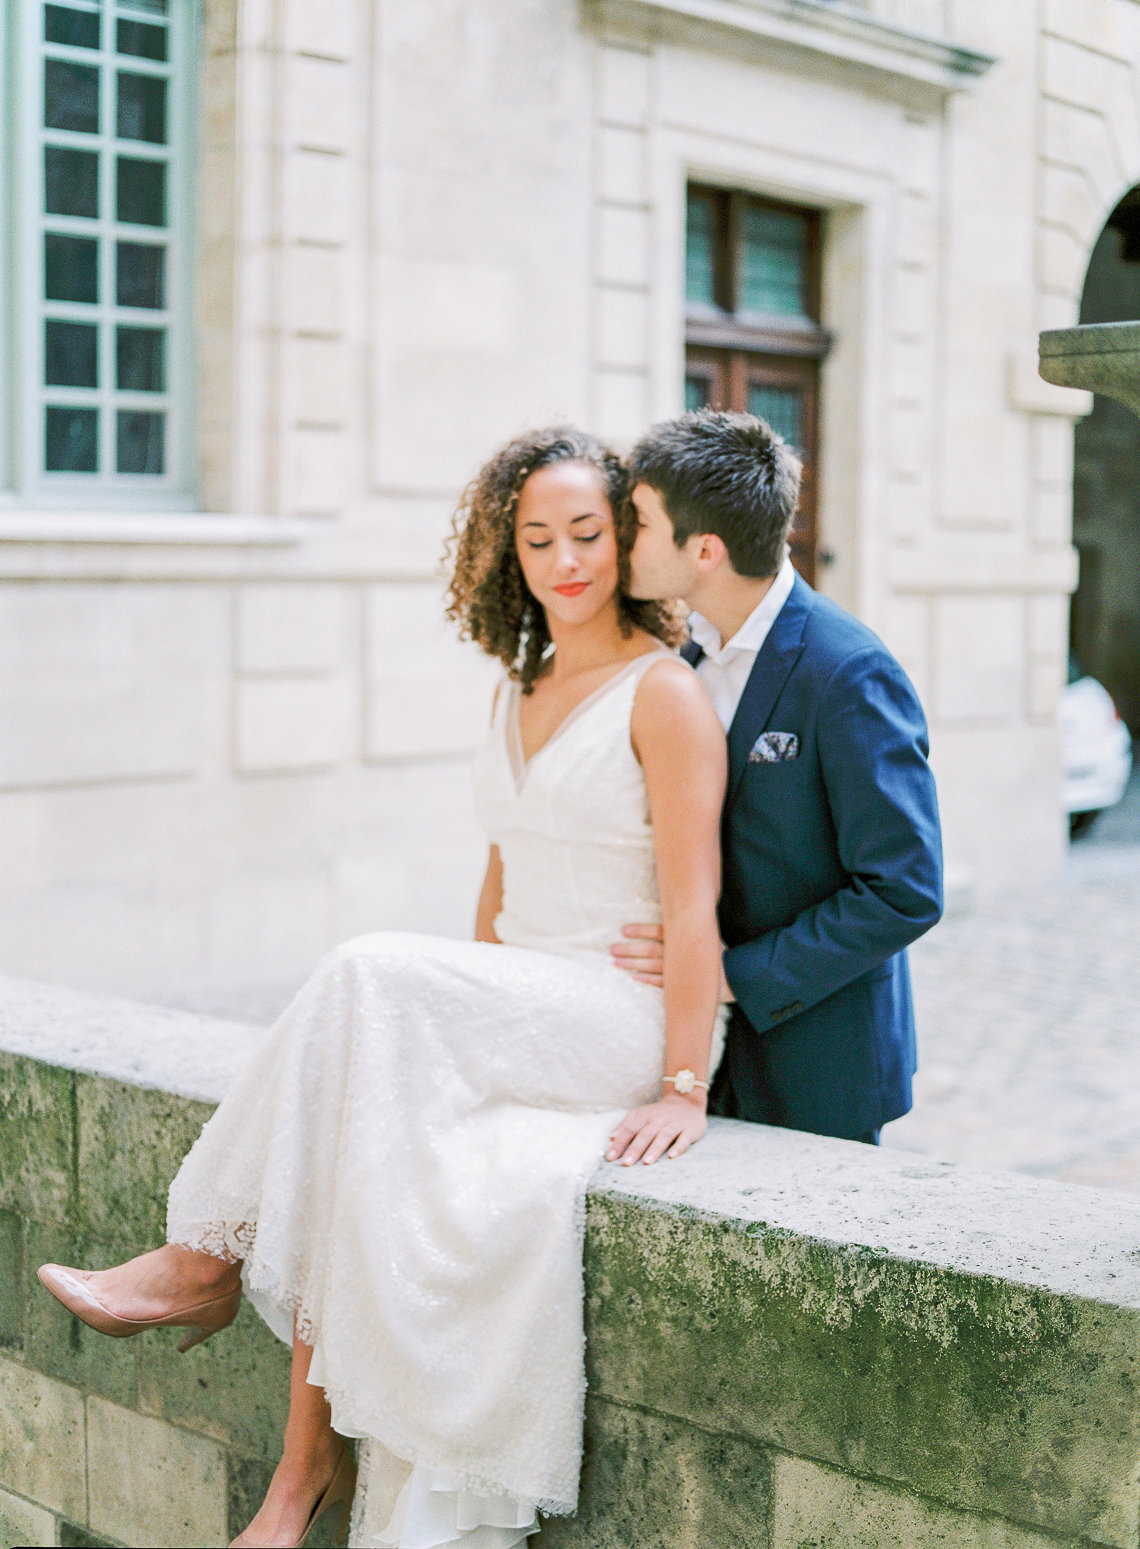 Paris-Editorial-Xander-and-Thea-Fine-Art-Wedding-photography-27